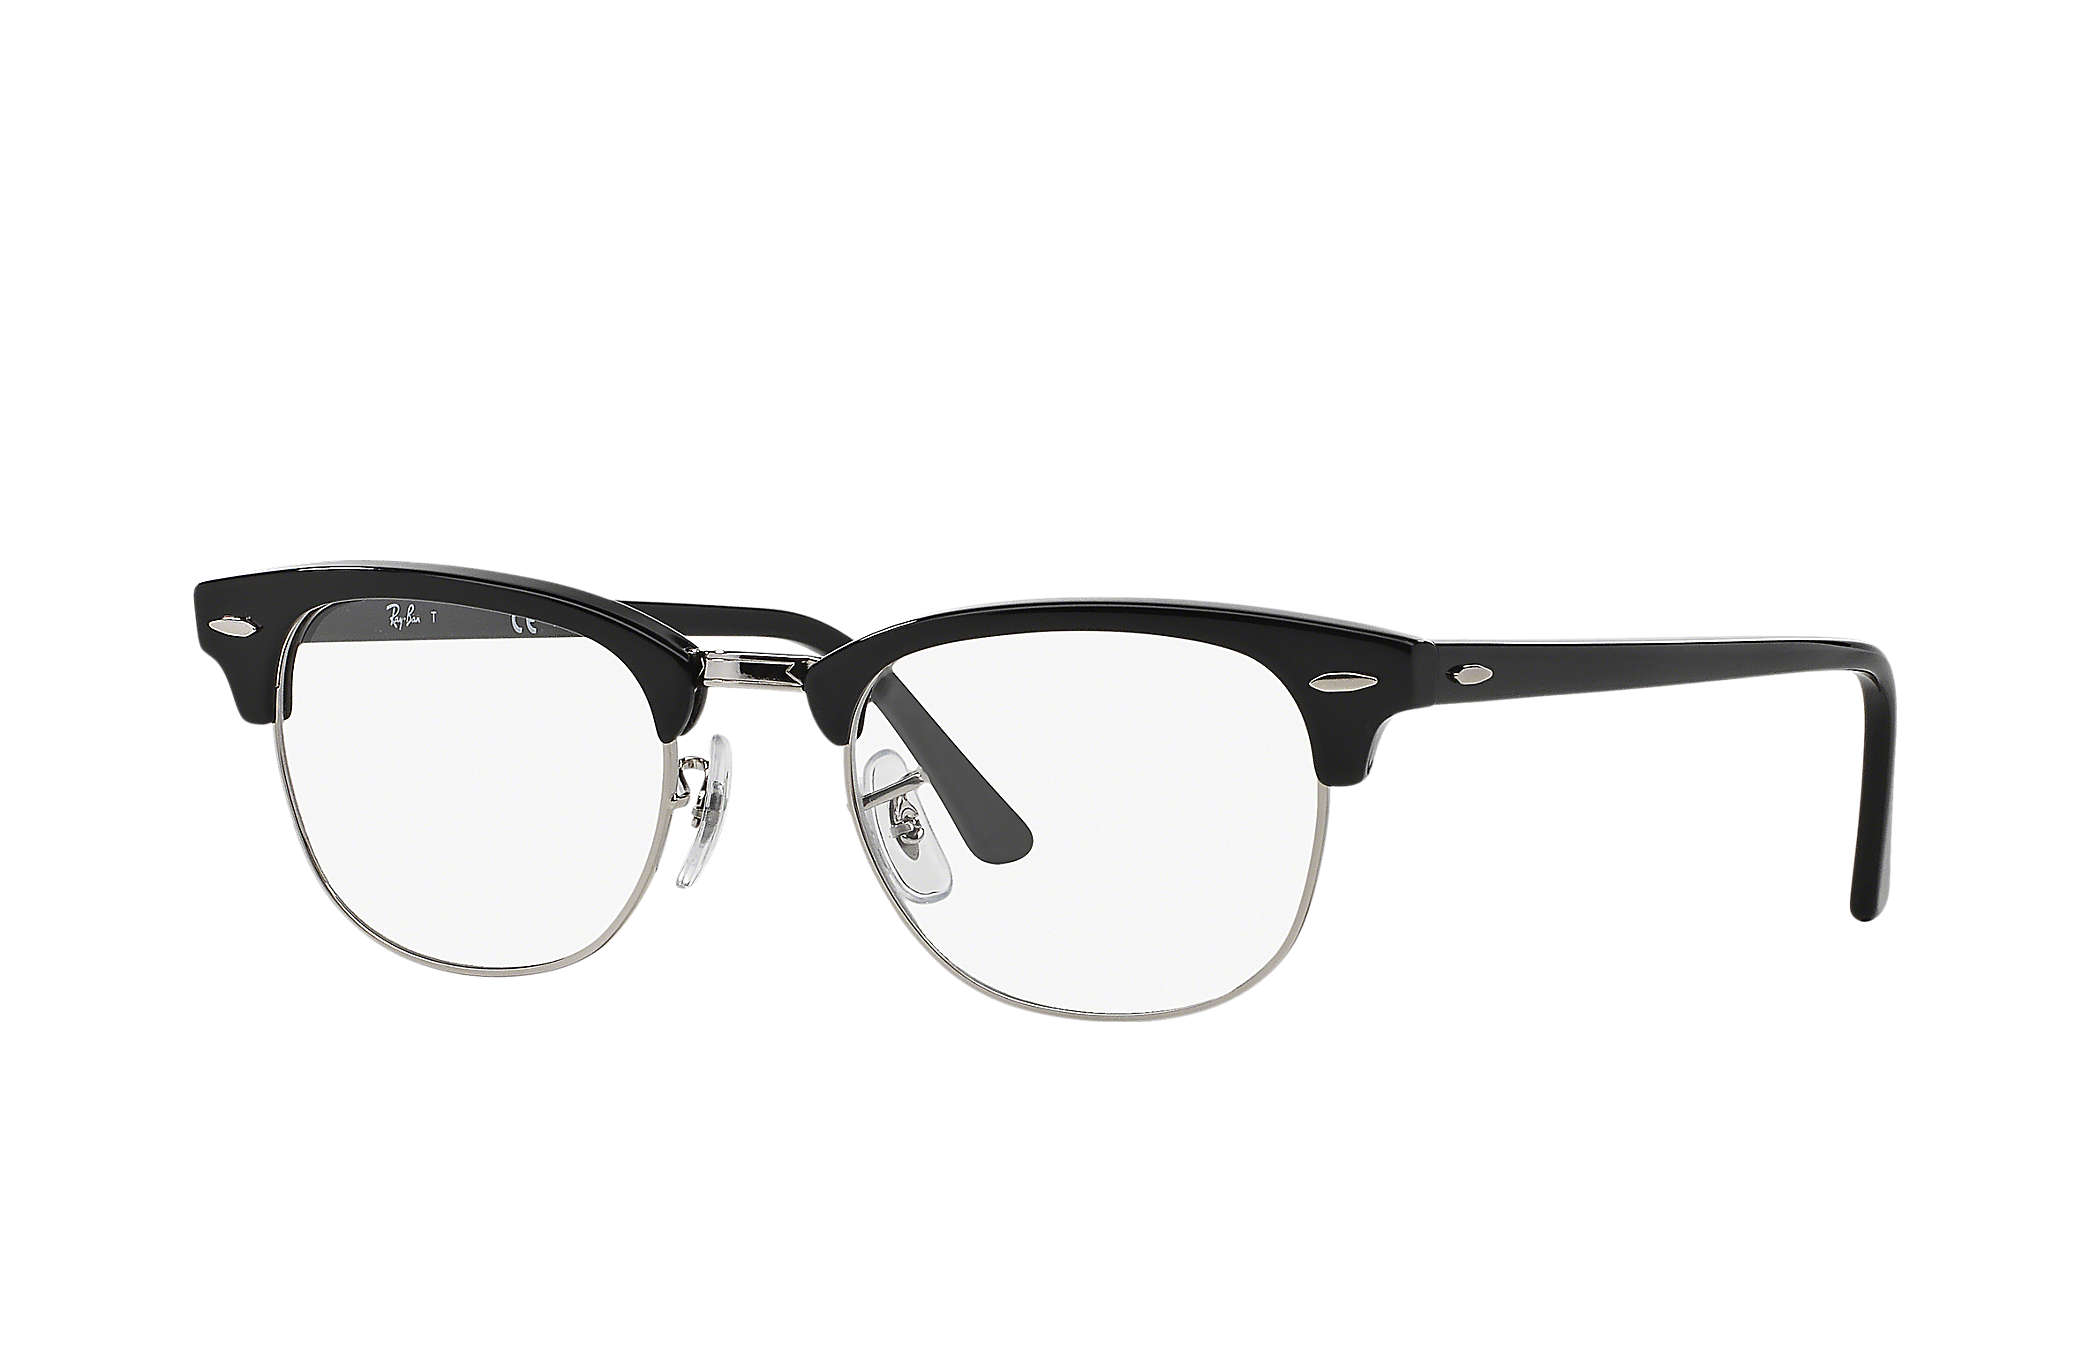 220f2a6a52c55 Ray Ban The Clubmaster Optics RB5184 - Denmead Eyecare